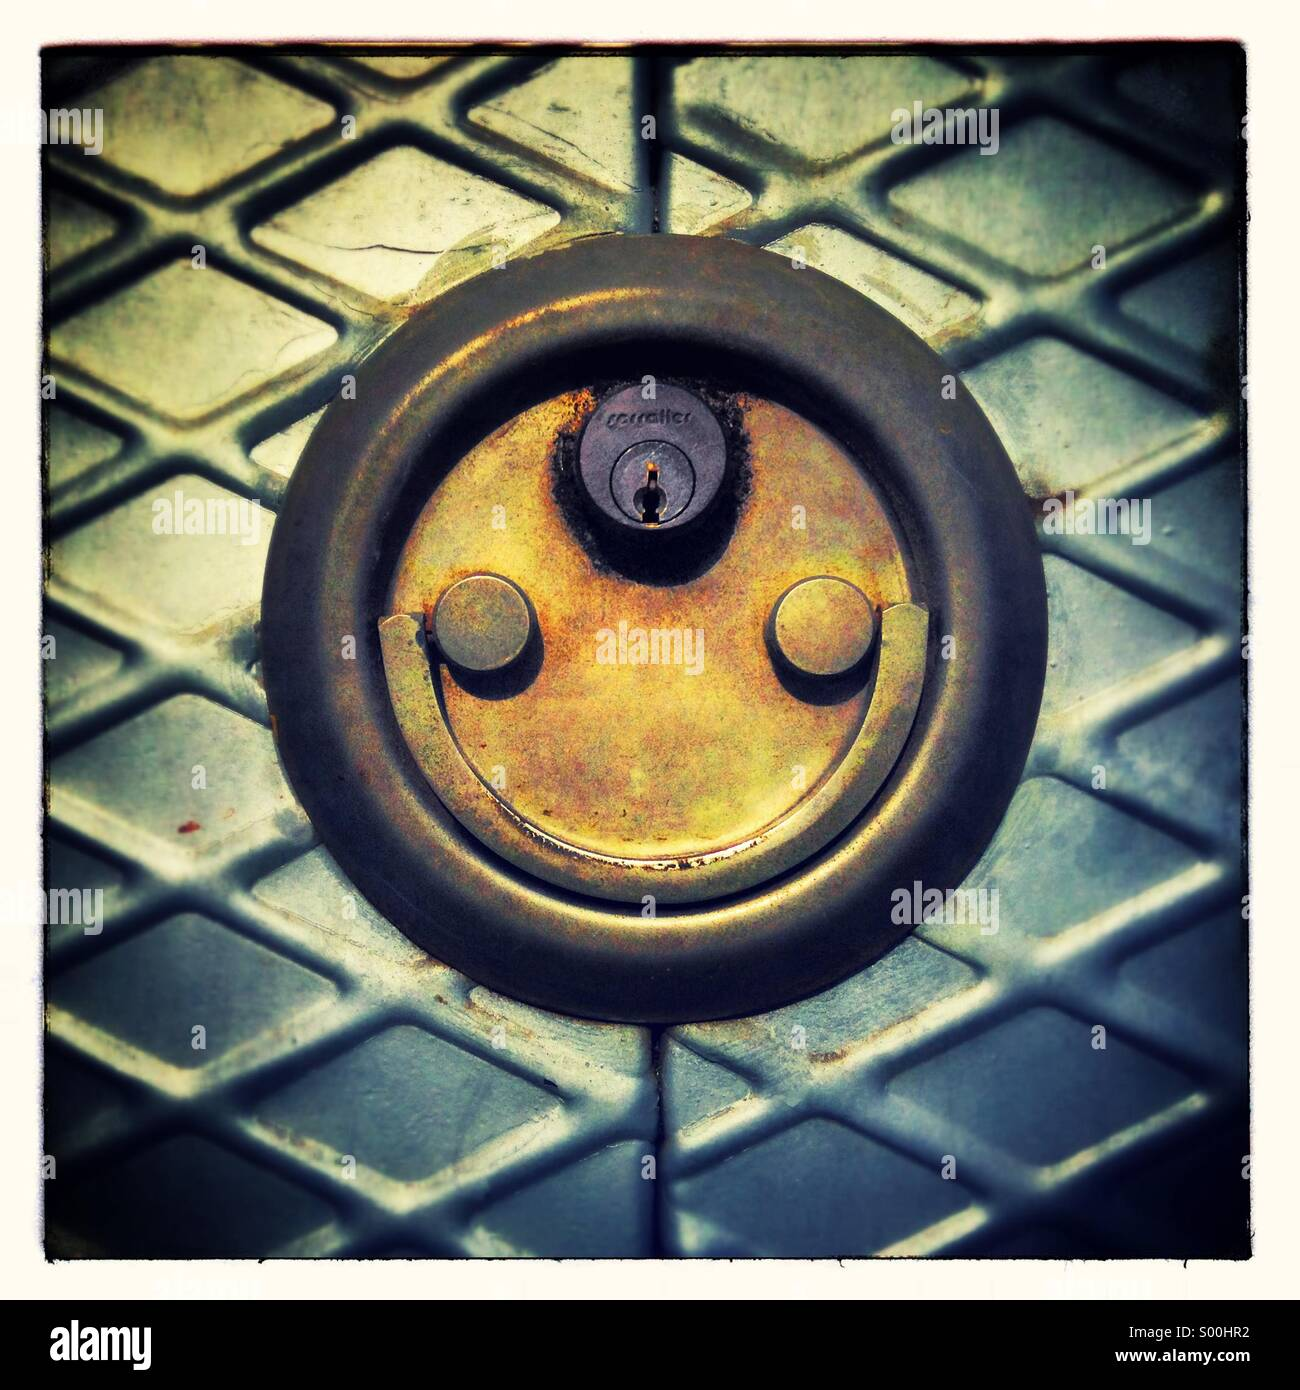 Door lock padlock smiling. Faces in objects - Stock Image